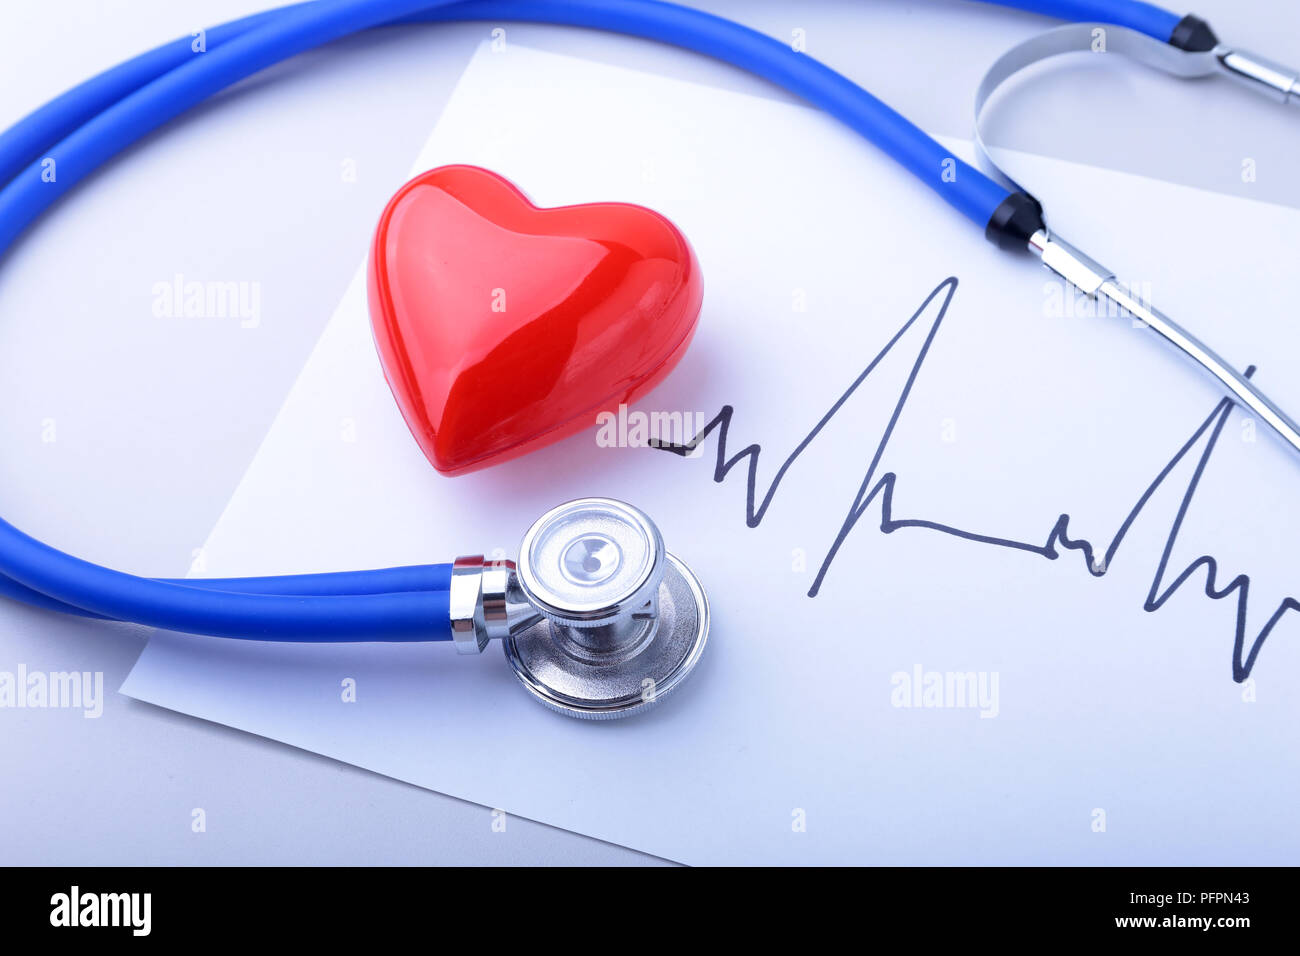 Medical stethoscope and red heart with cardiogram isolated on white. medical healthcare concept - Stock Image